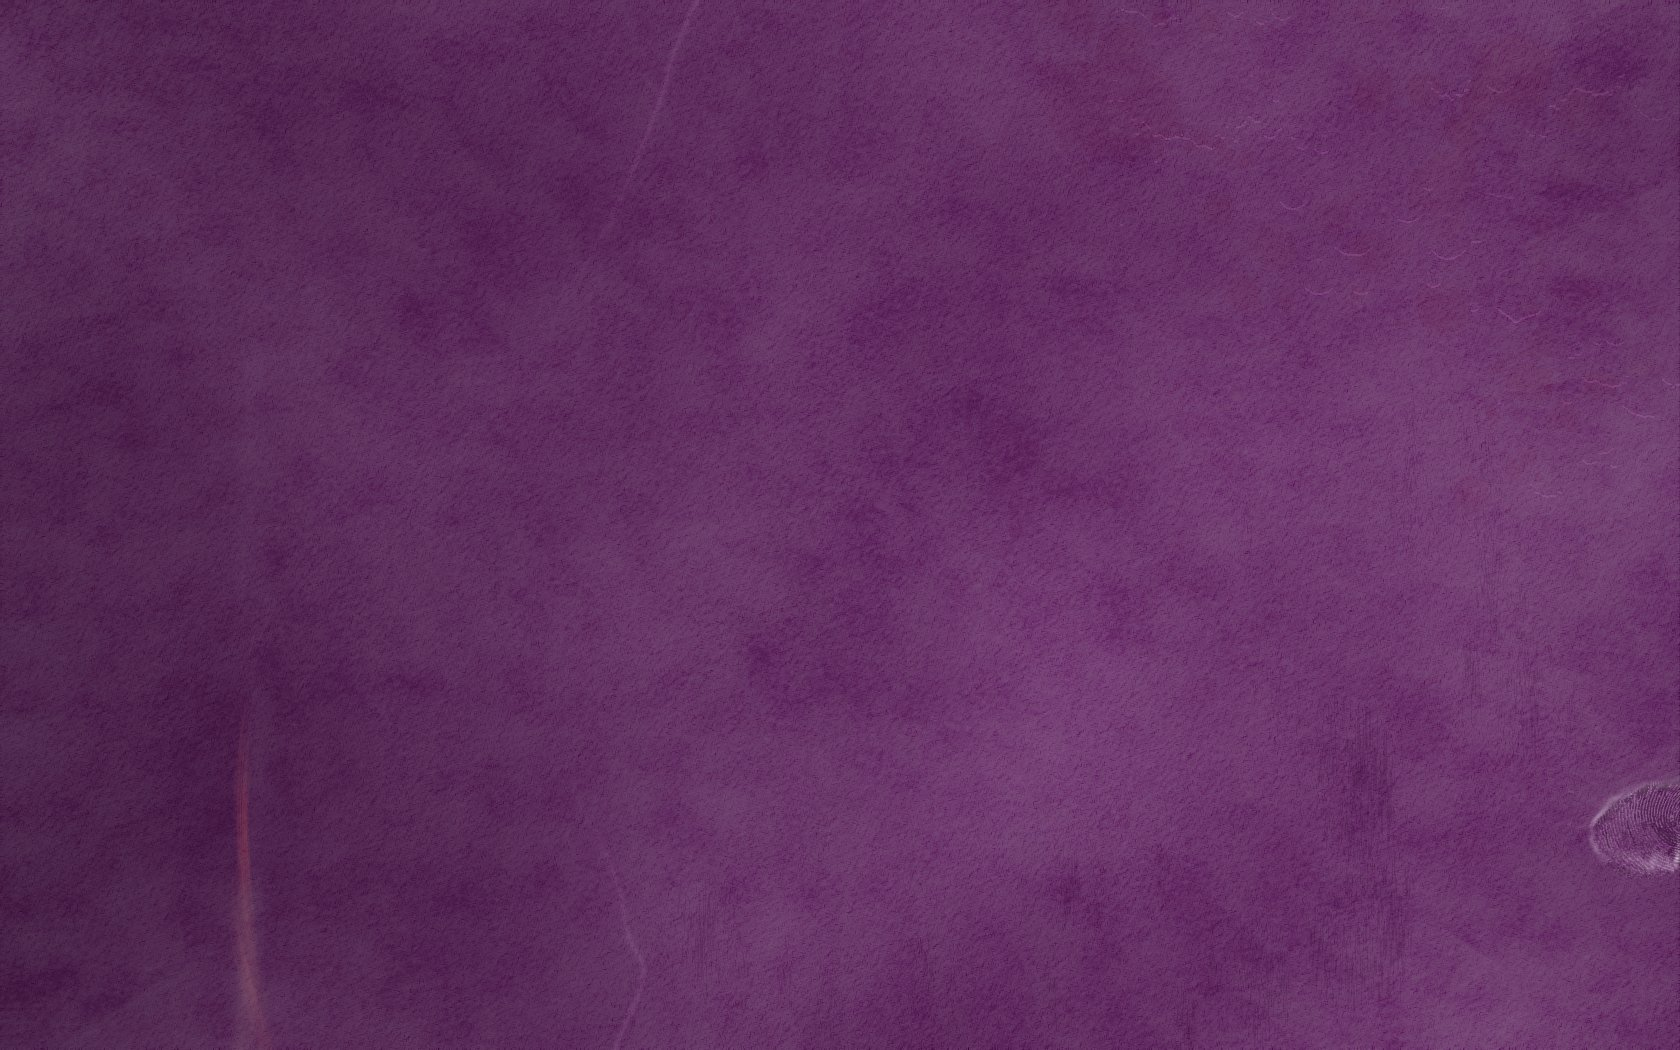 grunge no corner purple